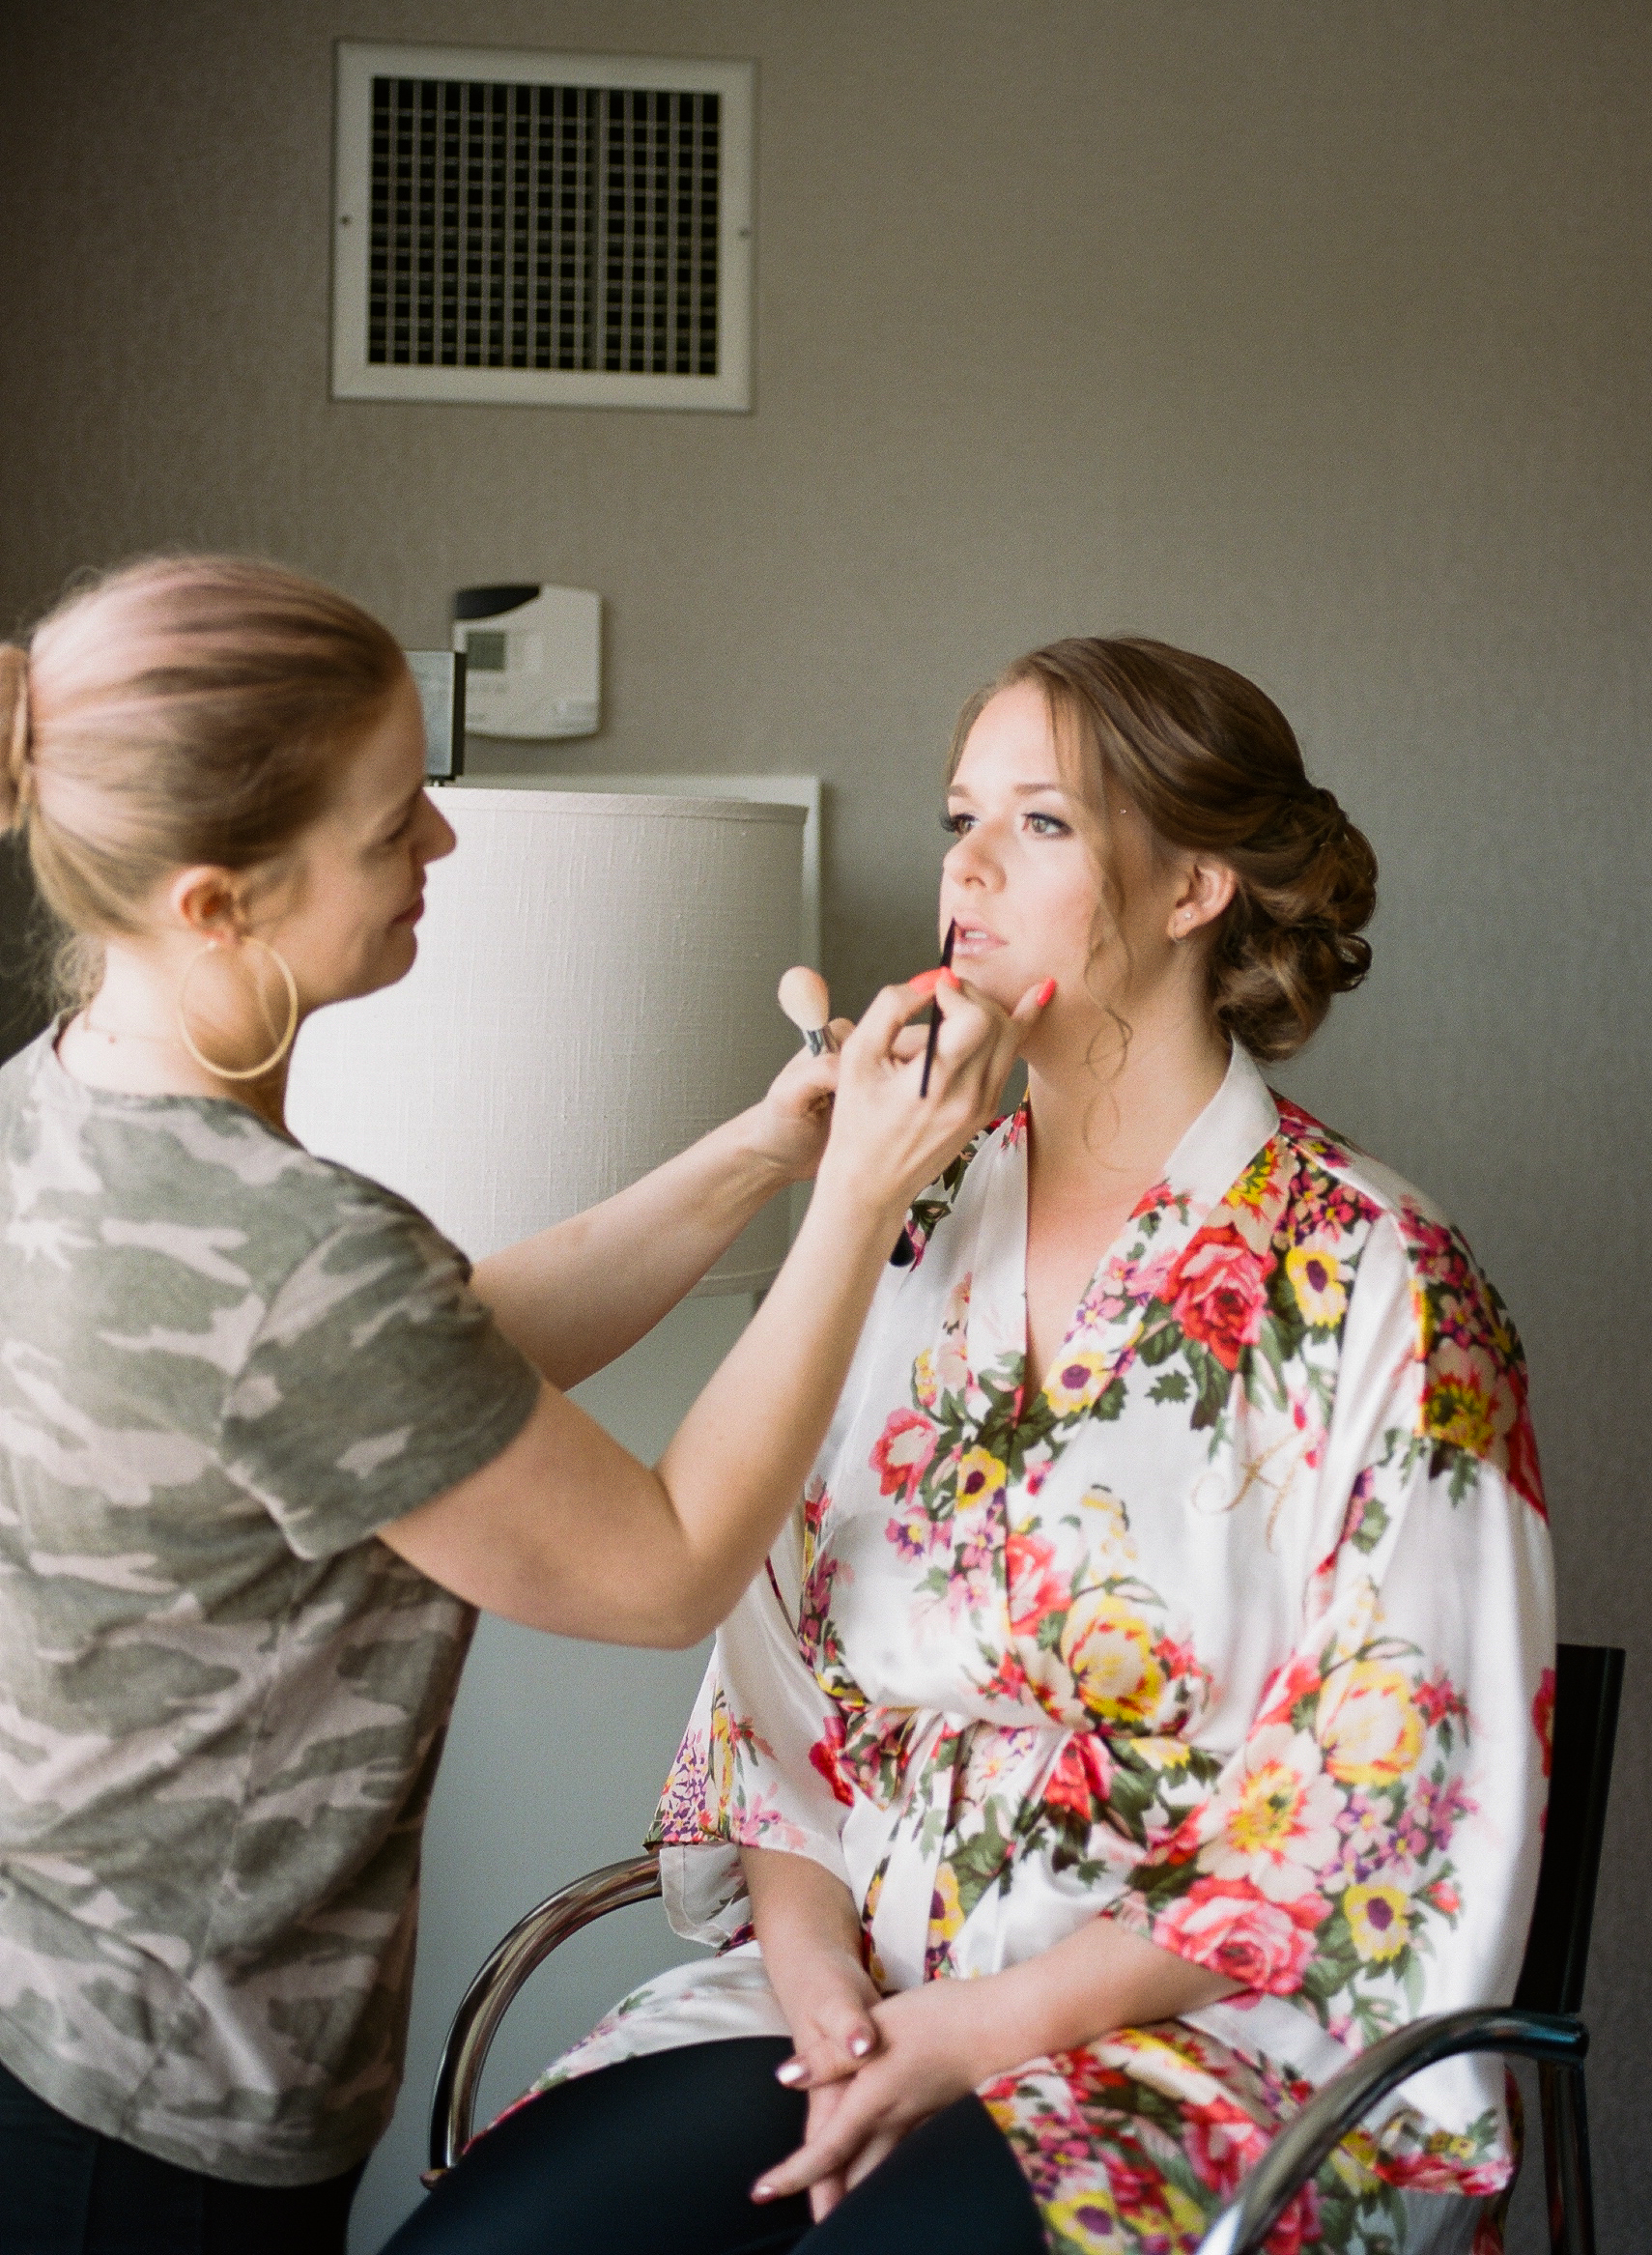 BRIDAL ROBE FOR GETTING READY